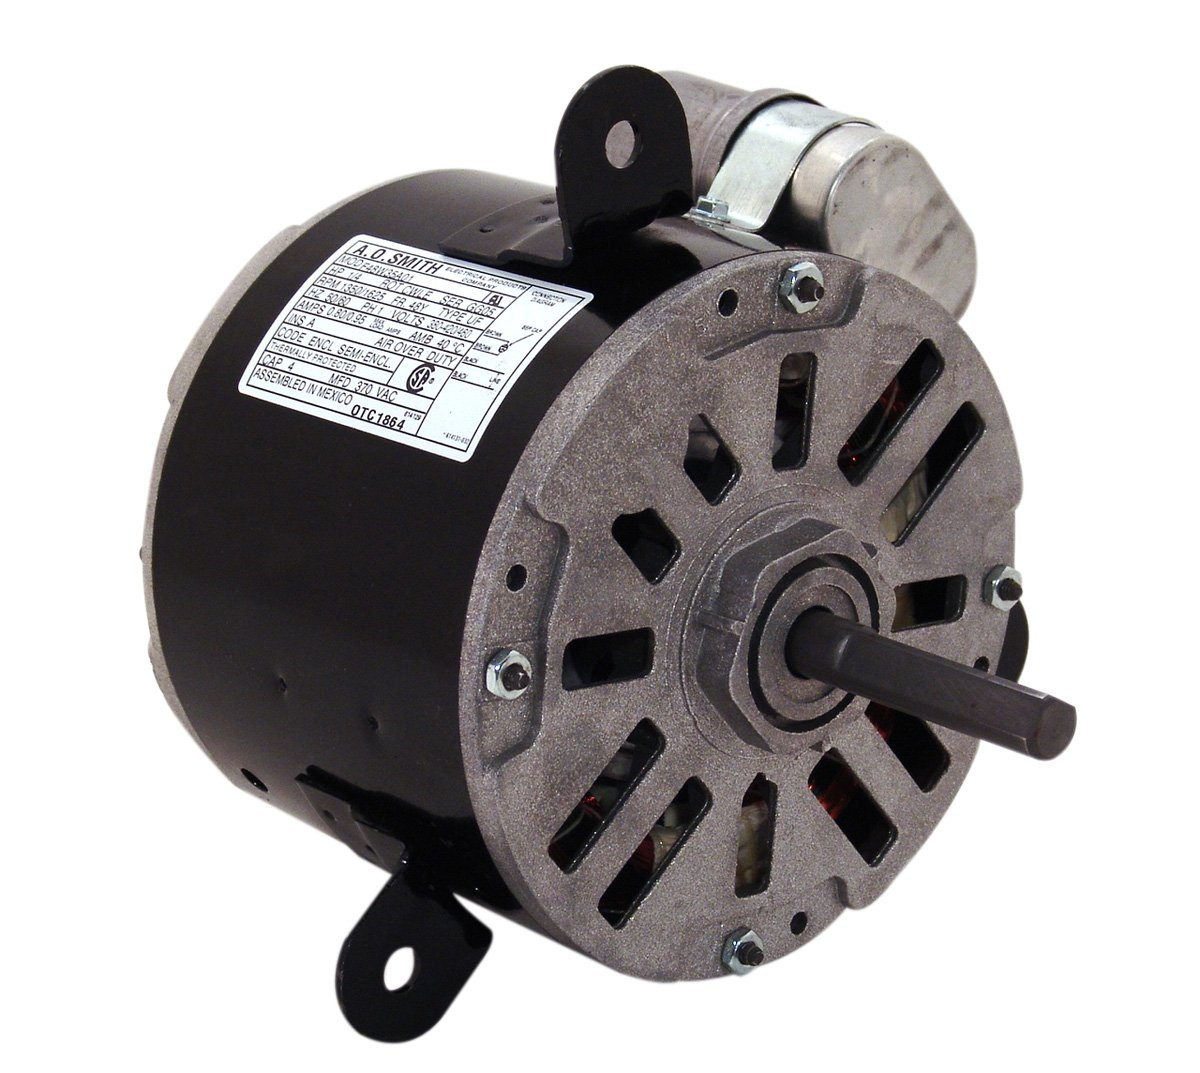 A.O. Smith OTC1862 1/4 HP, 1625 RPM, 1 Speed, 48Y Frame, CWLE Rotation, 1/2-Inch by 2-3/4-Inch Flat Shaft OEM Direct Replacement by A. O. Smith  B007ATNWCM